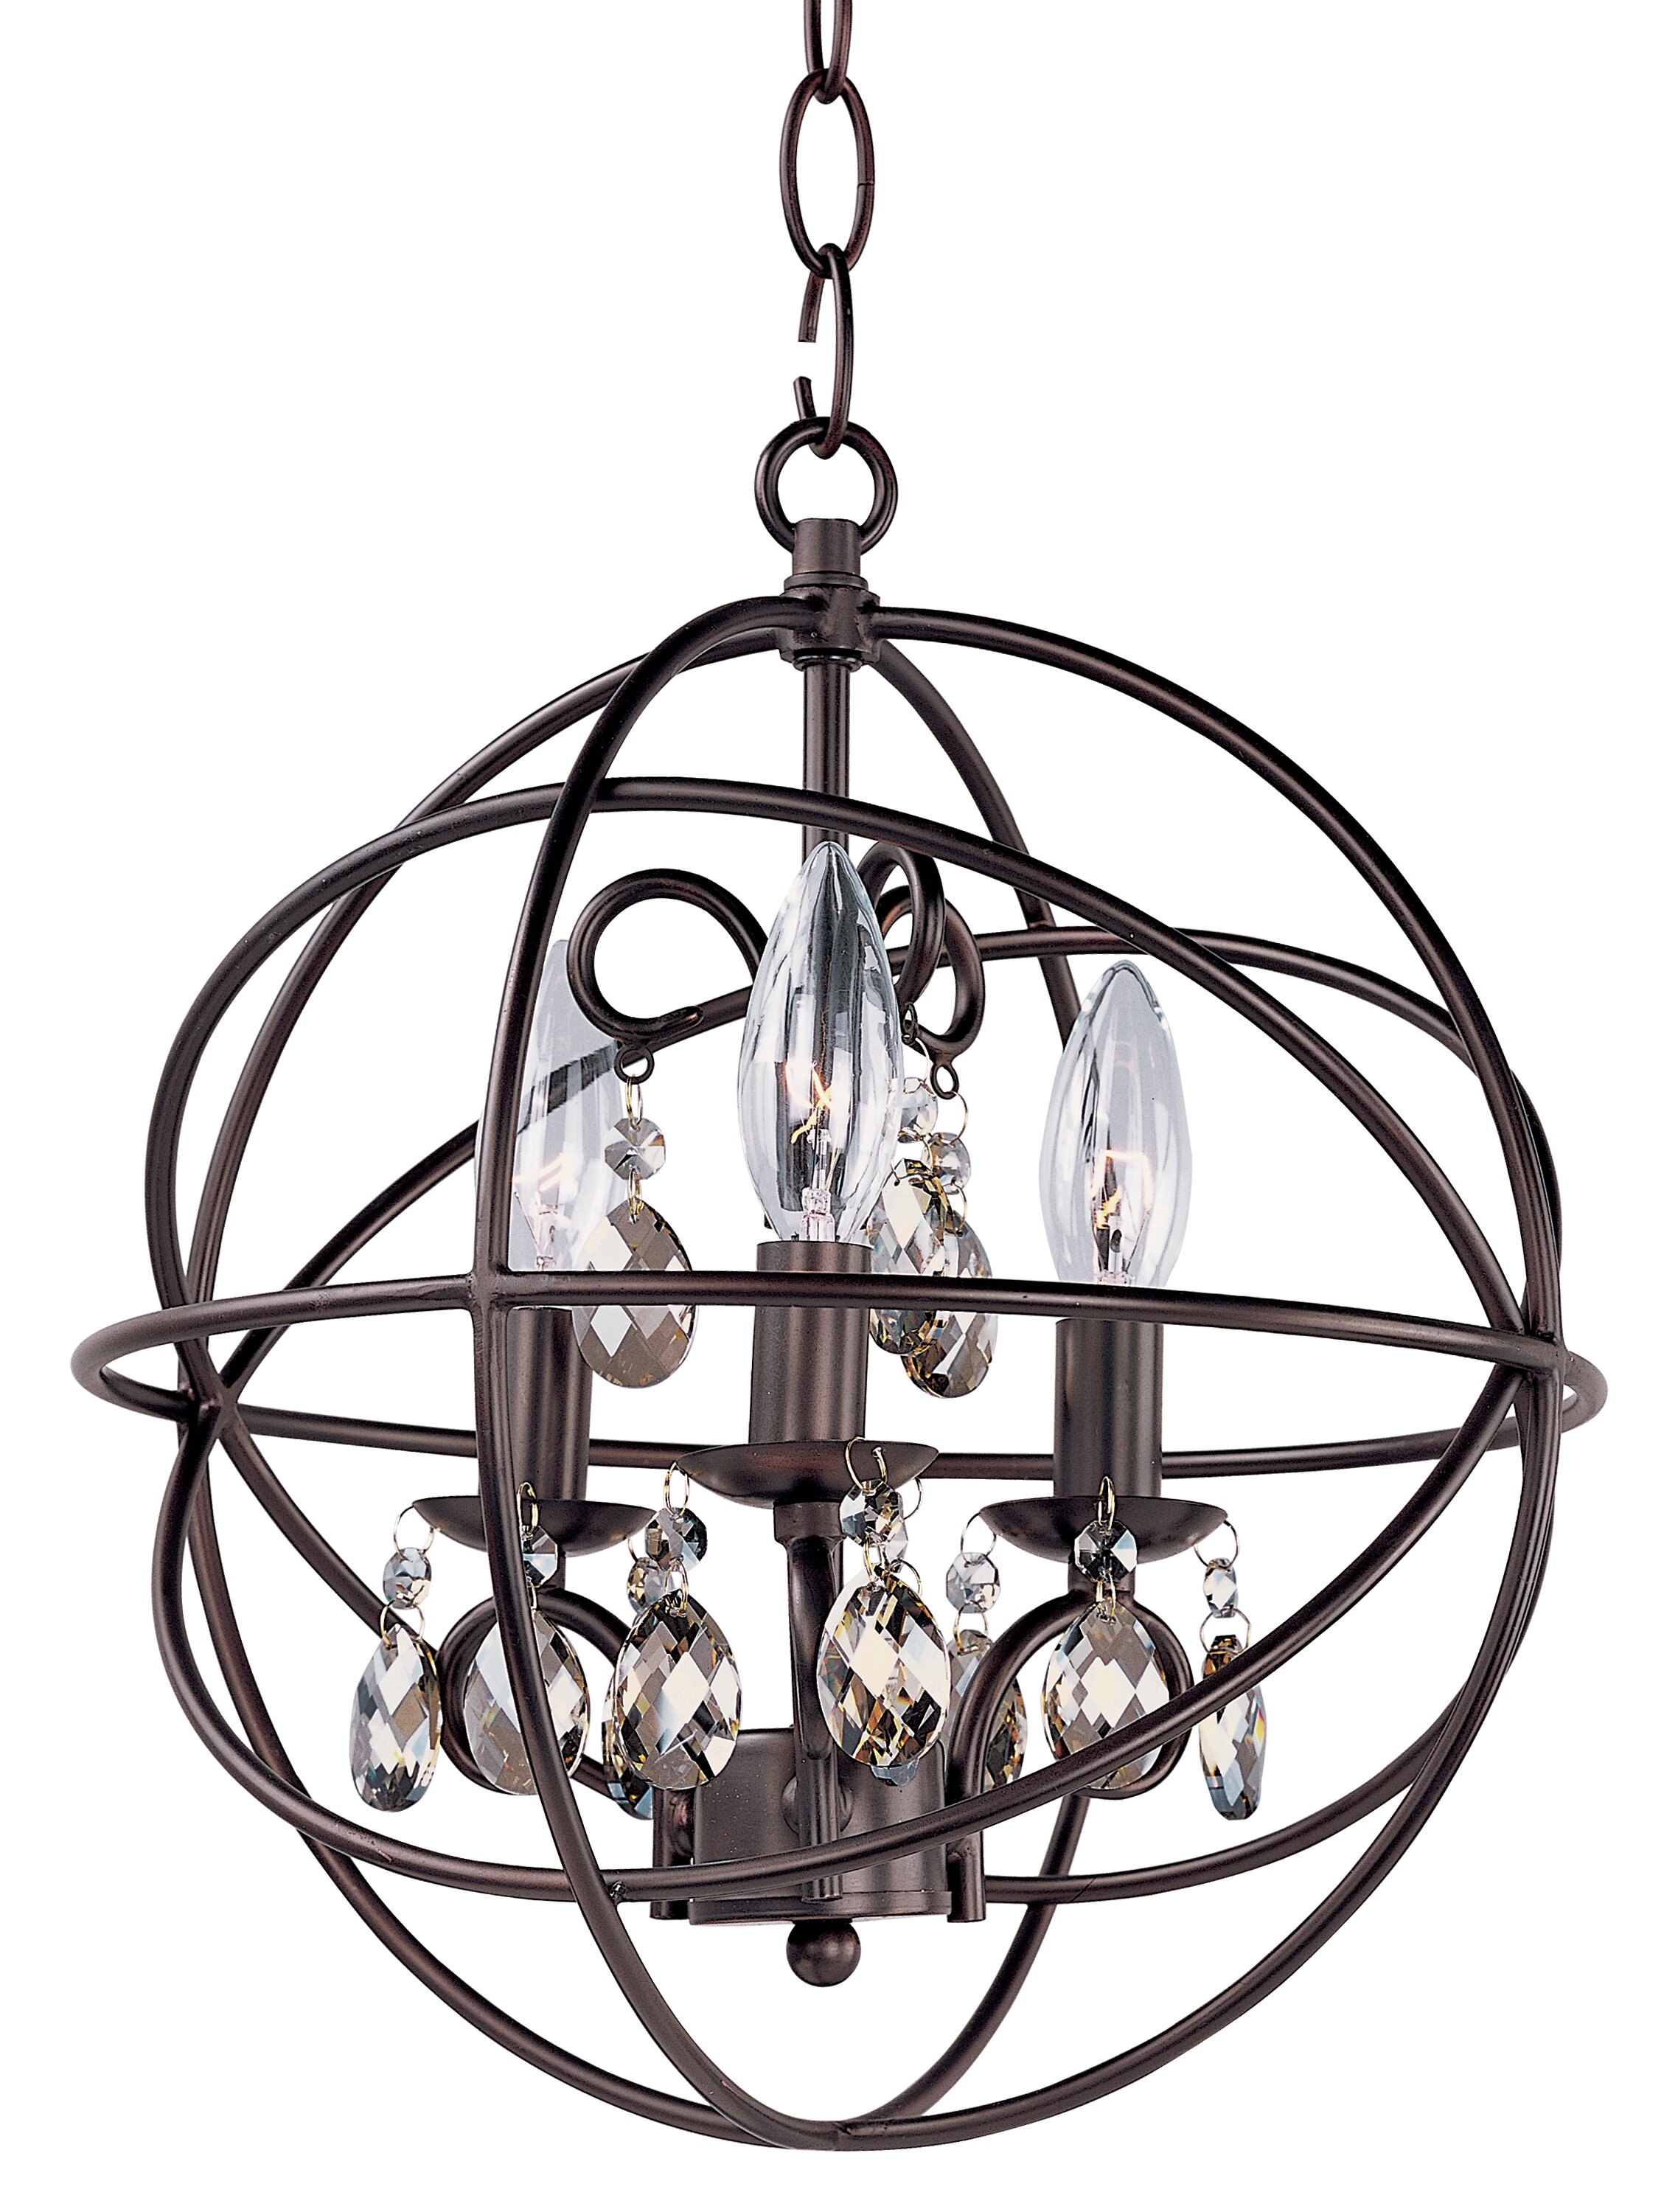 Willa Arlo Interiors Alden 3 Light Candle Style Chandelier